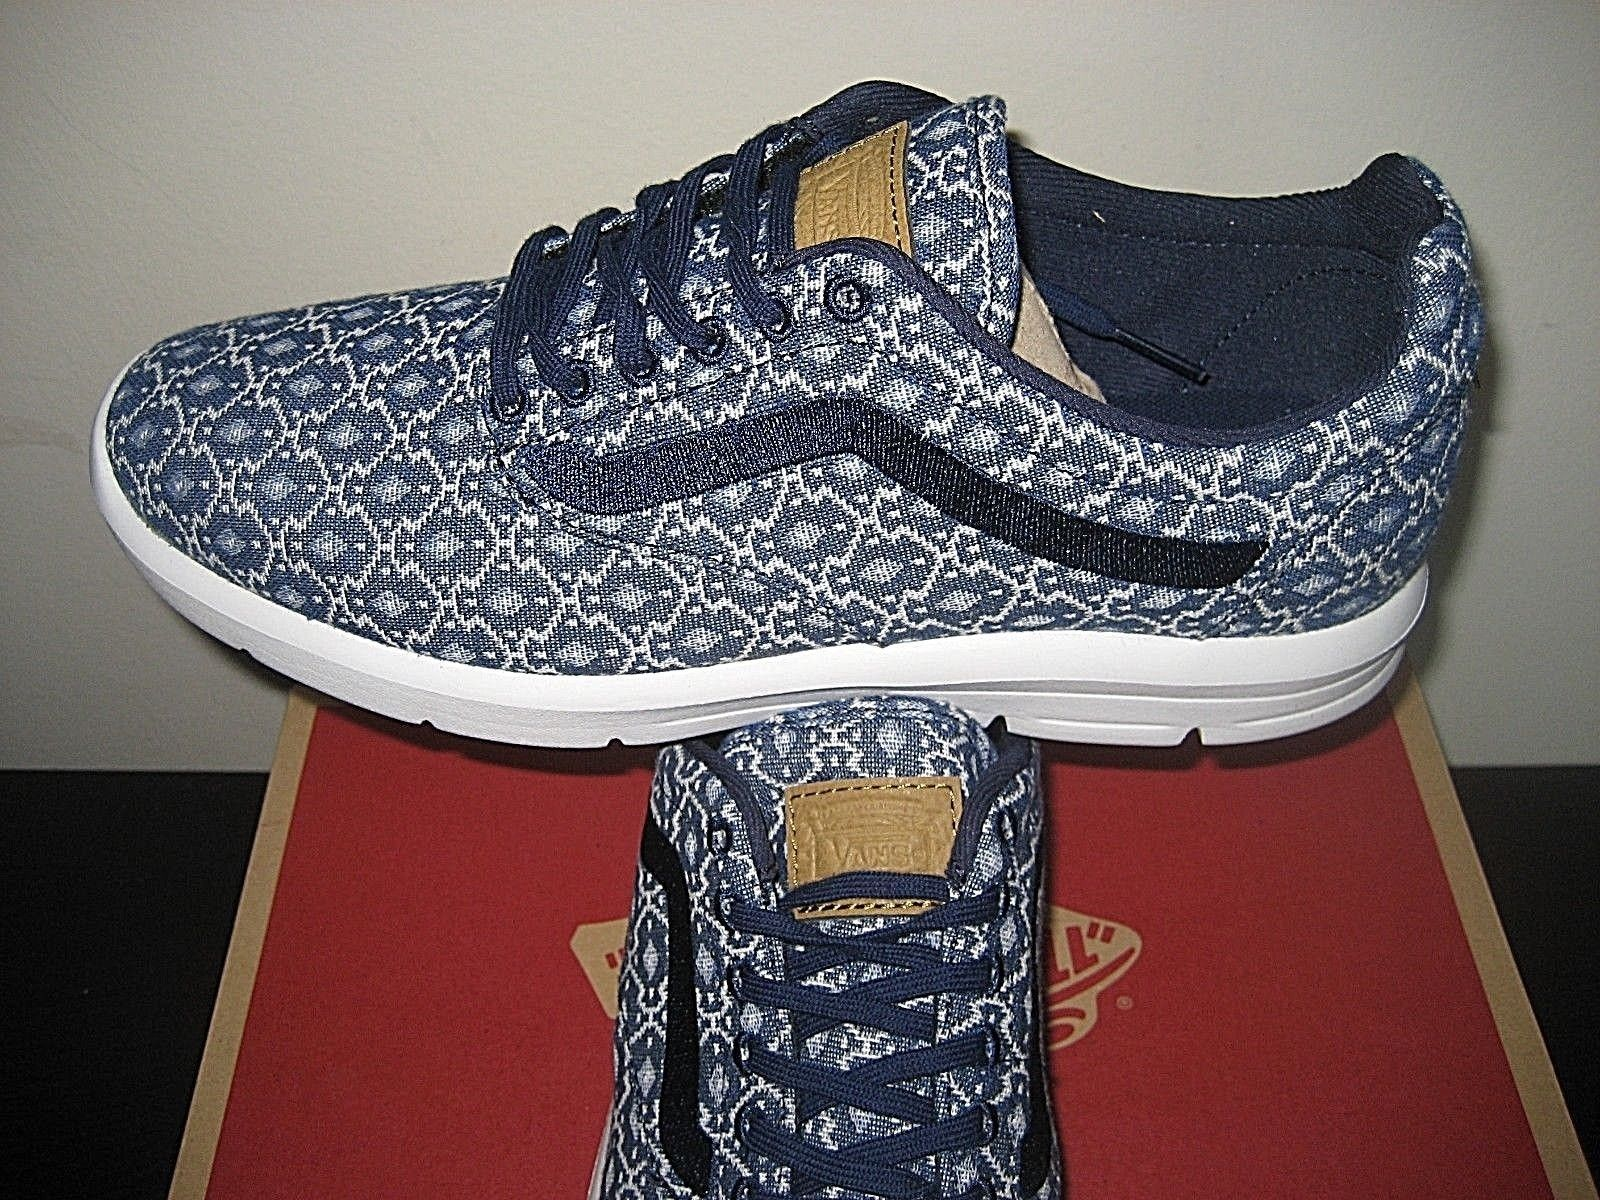 Vans Mens Iso 1.5 Blanket Weave Eclipse Blue White  Shoes Size 8 Ultra Cush New